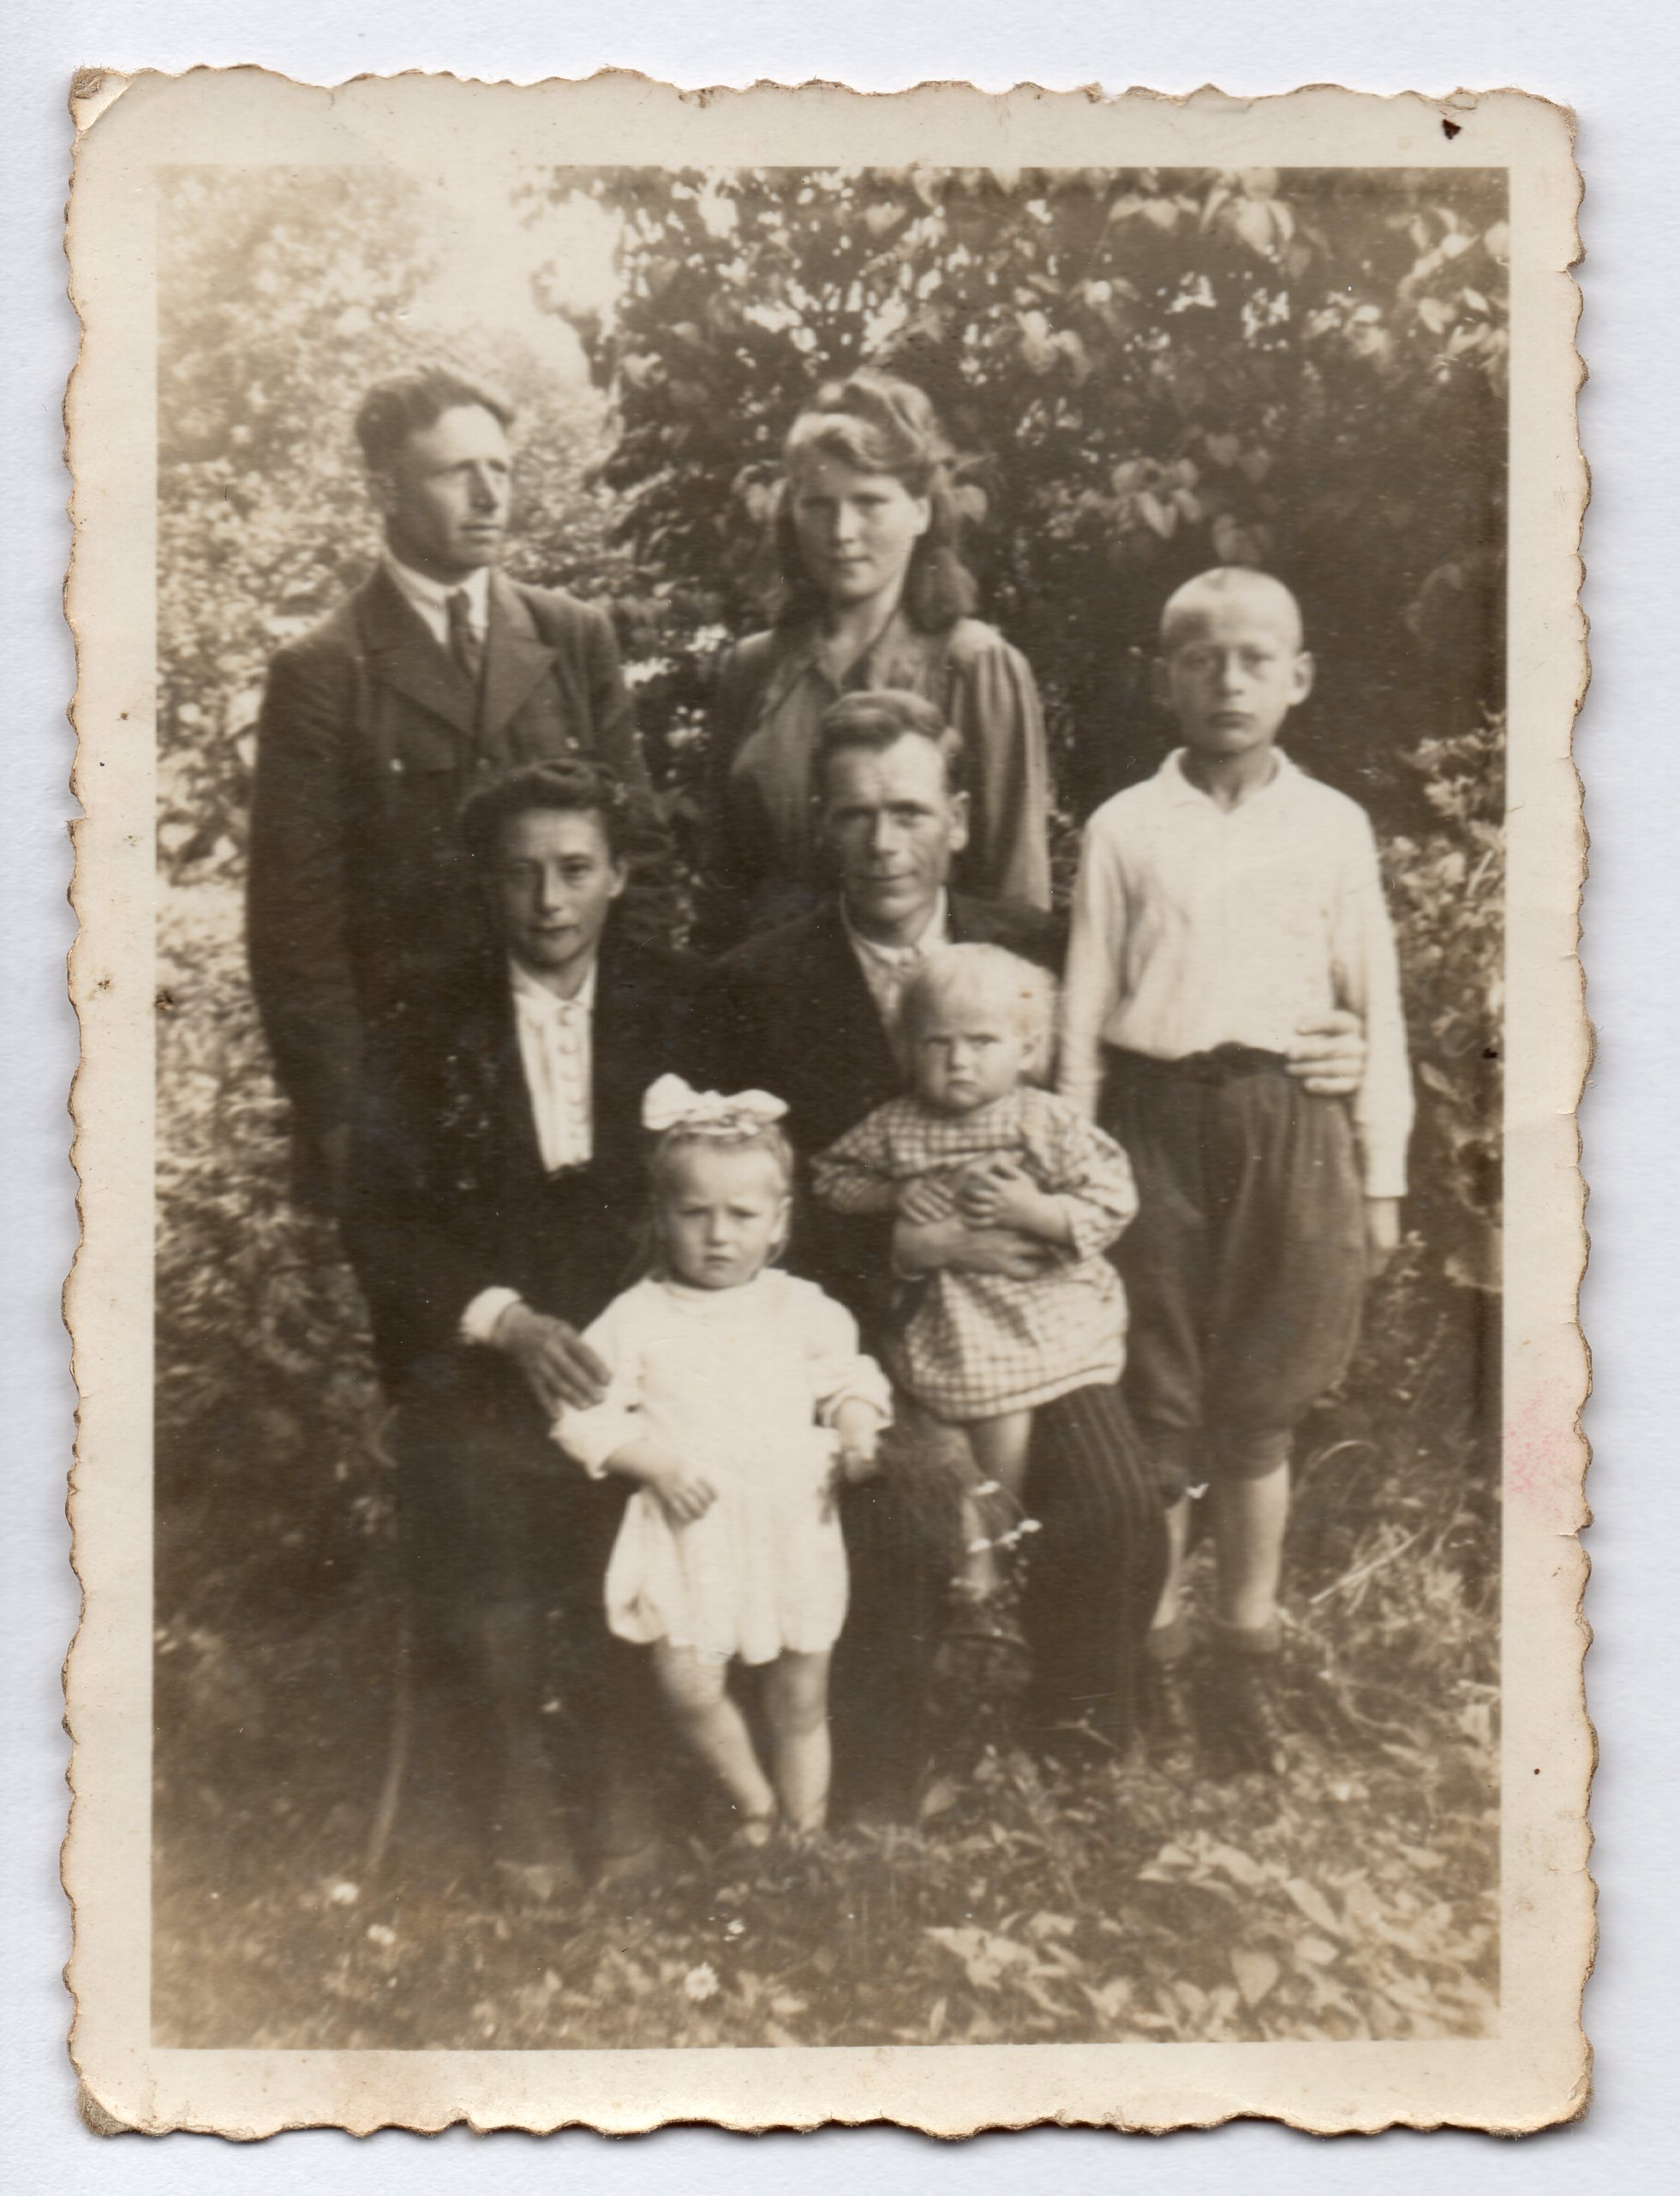 A  black and white photo of the family around two adults on chairs. All serious. Uncle Józef's hand around Michał's waist is  clearly seen as he sits with a toddler on his lap next to Michał